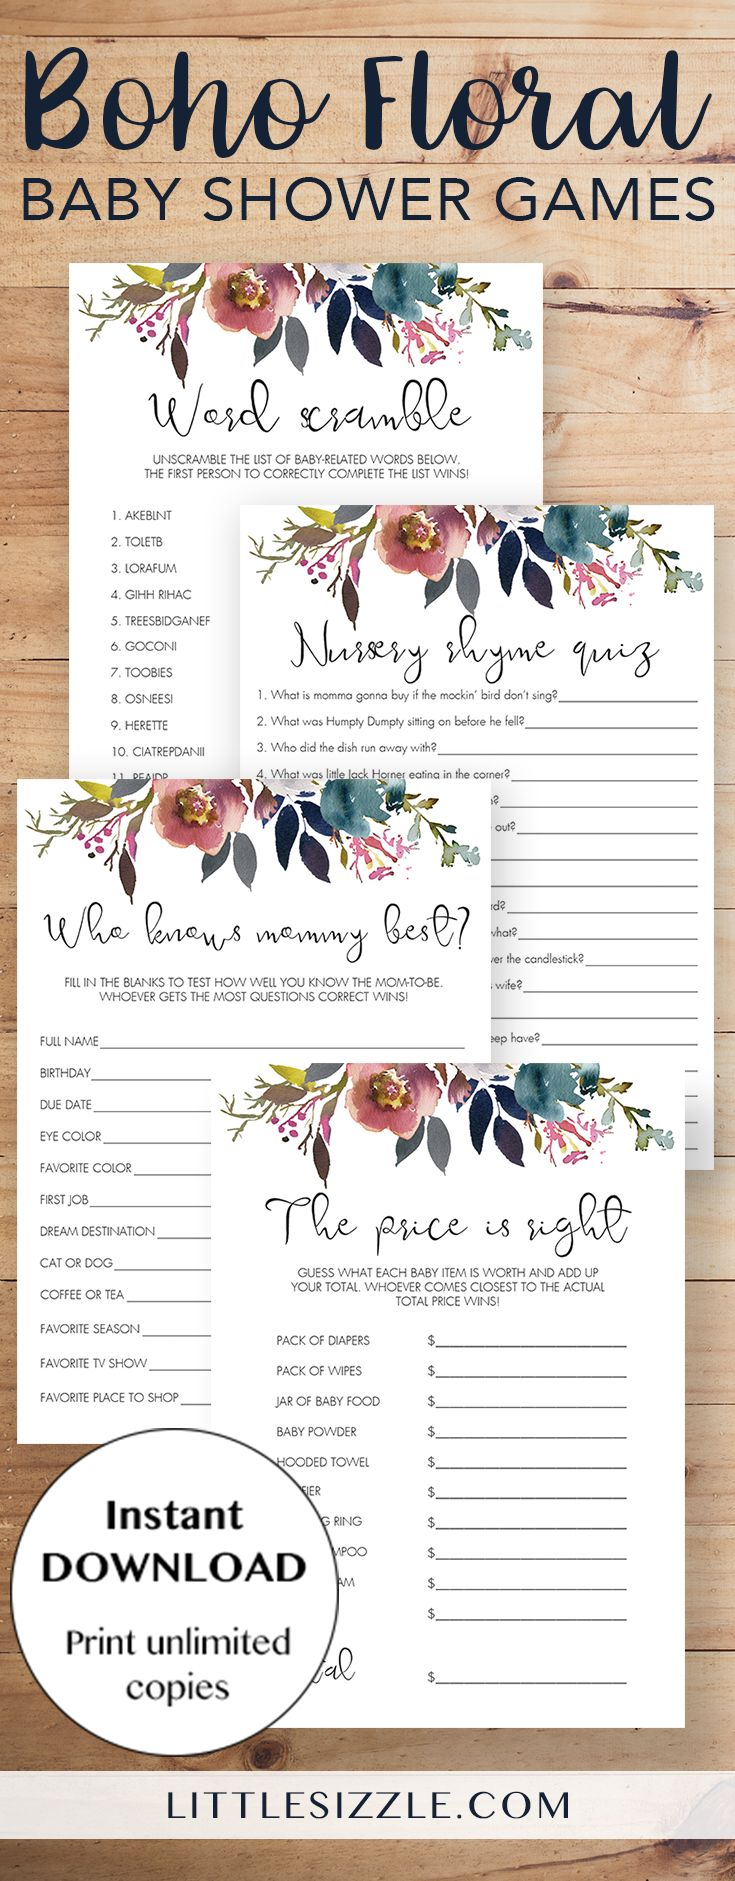 Boho floral baby shower games printable by LittleSizzle. Entertain your guests with this pack of popular printable baby shower games with gorgeous floral watercolor design. WOW everyone with your own baby shower games with pink and purple flowers. This printable boho themed game pack is perfect for any girl or neutral baby shower and will create lots of fun moments! The pack includes easy and popular games like baby word scramble, nursery rhyme quiz, who knows mommy best and the price is right.